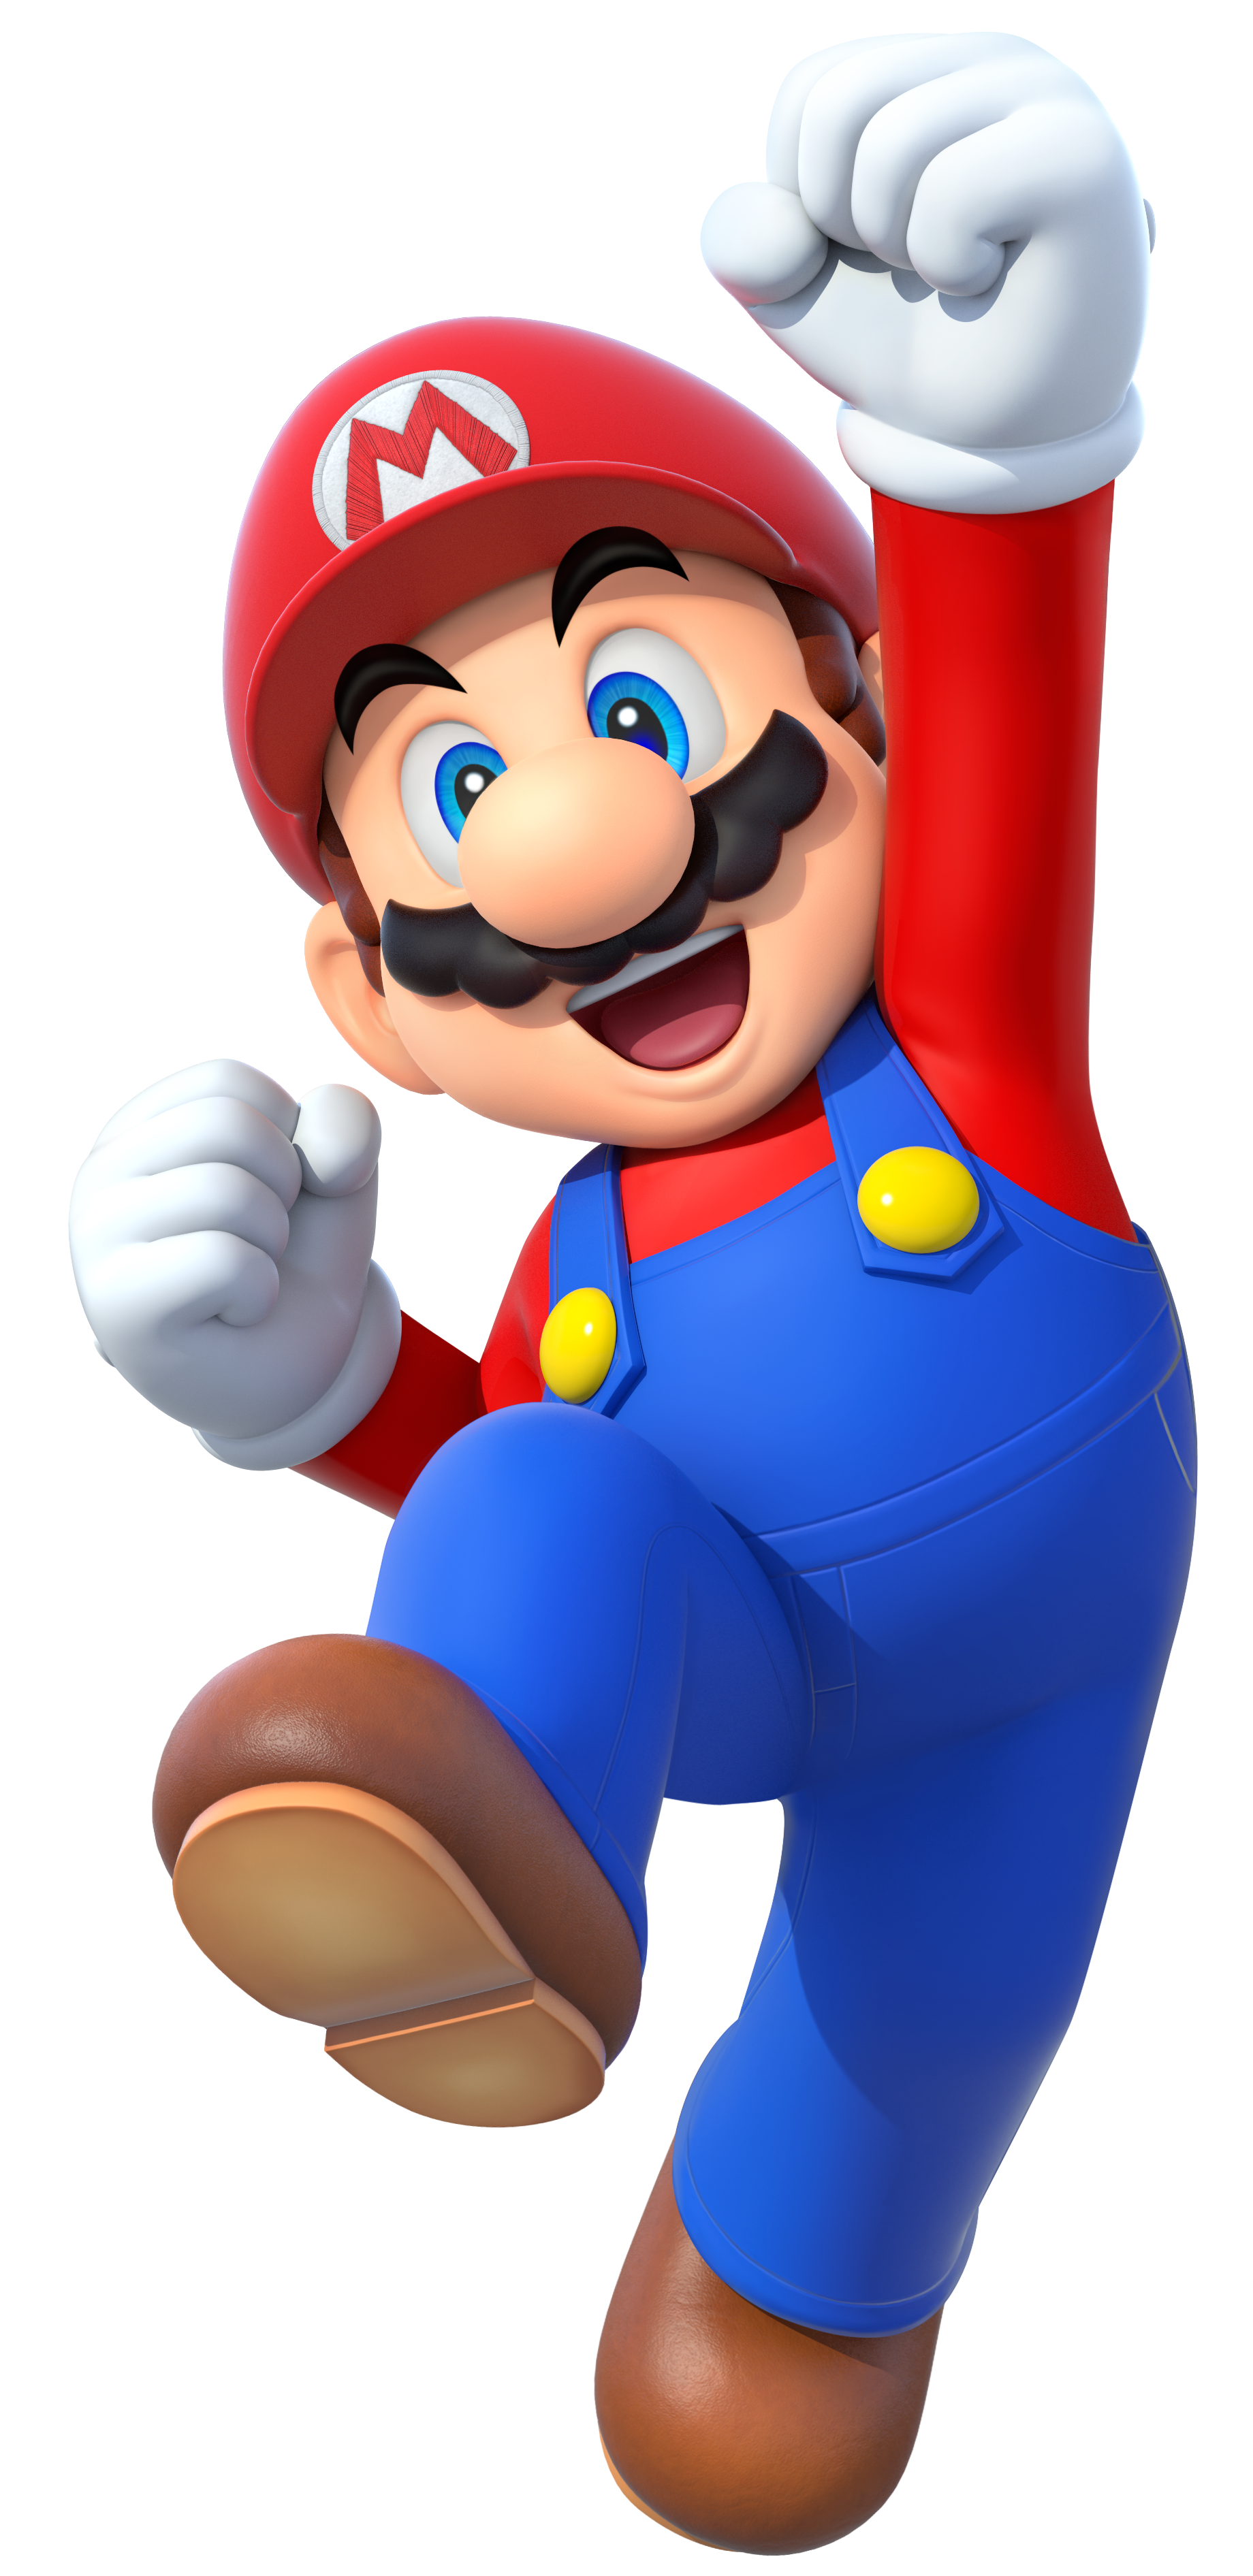 Png picture web icons. Mario clipart mario birthday